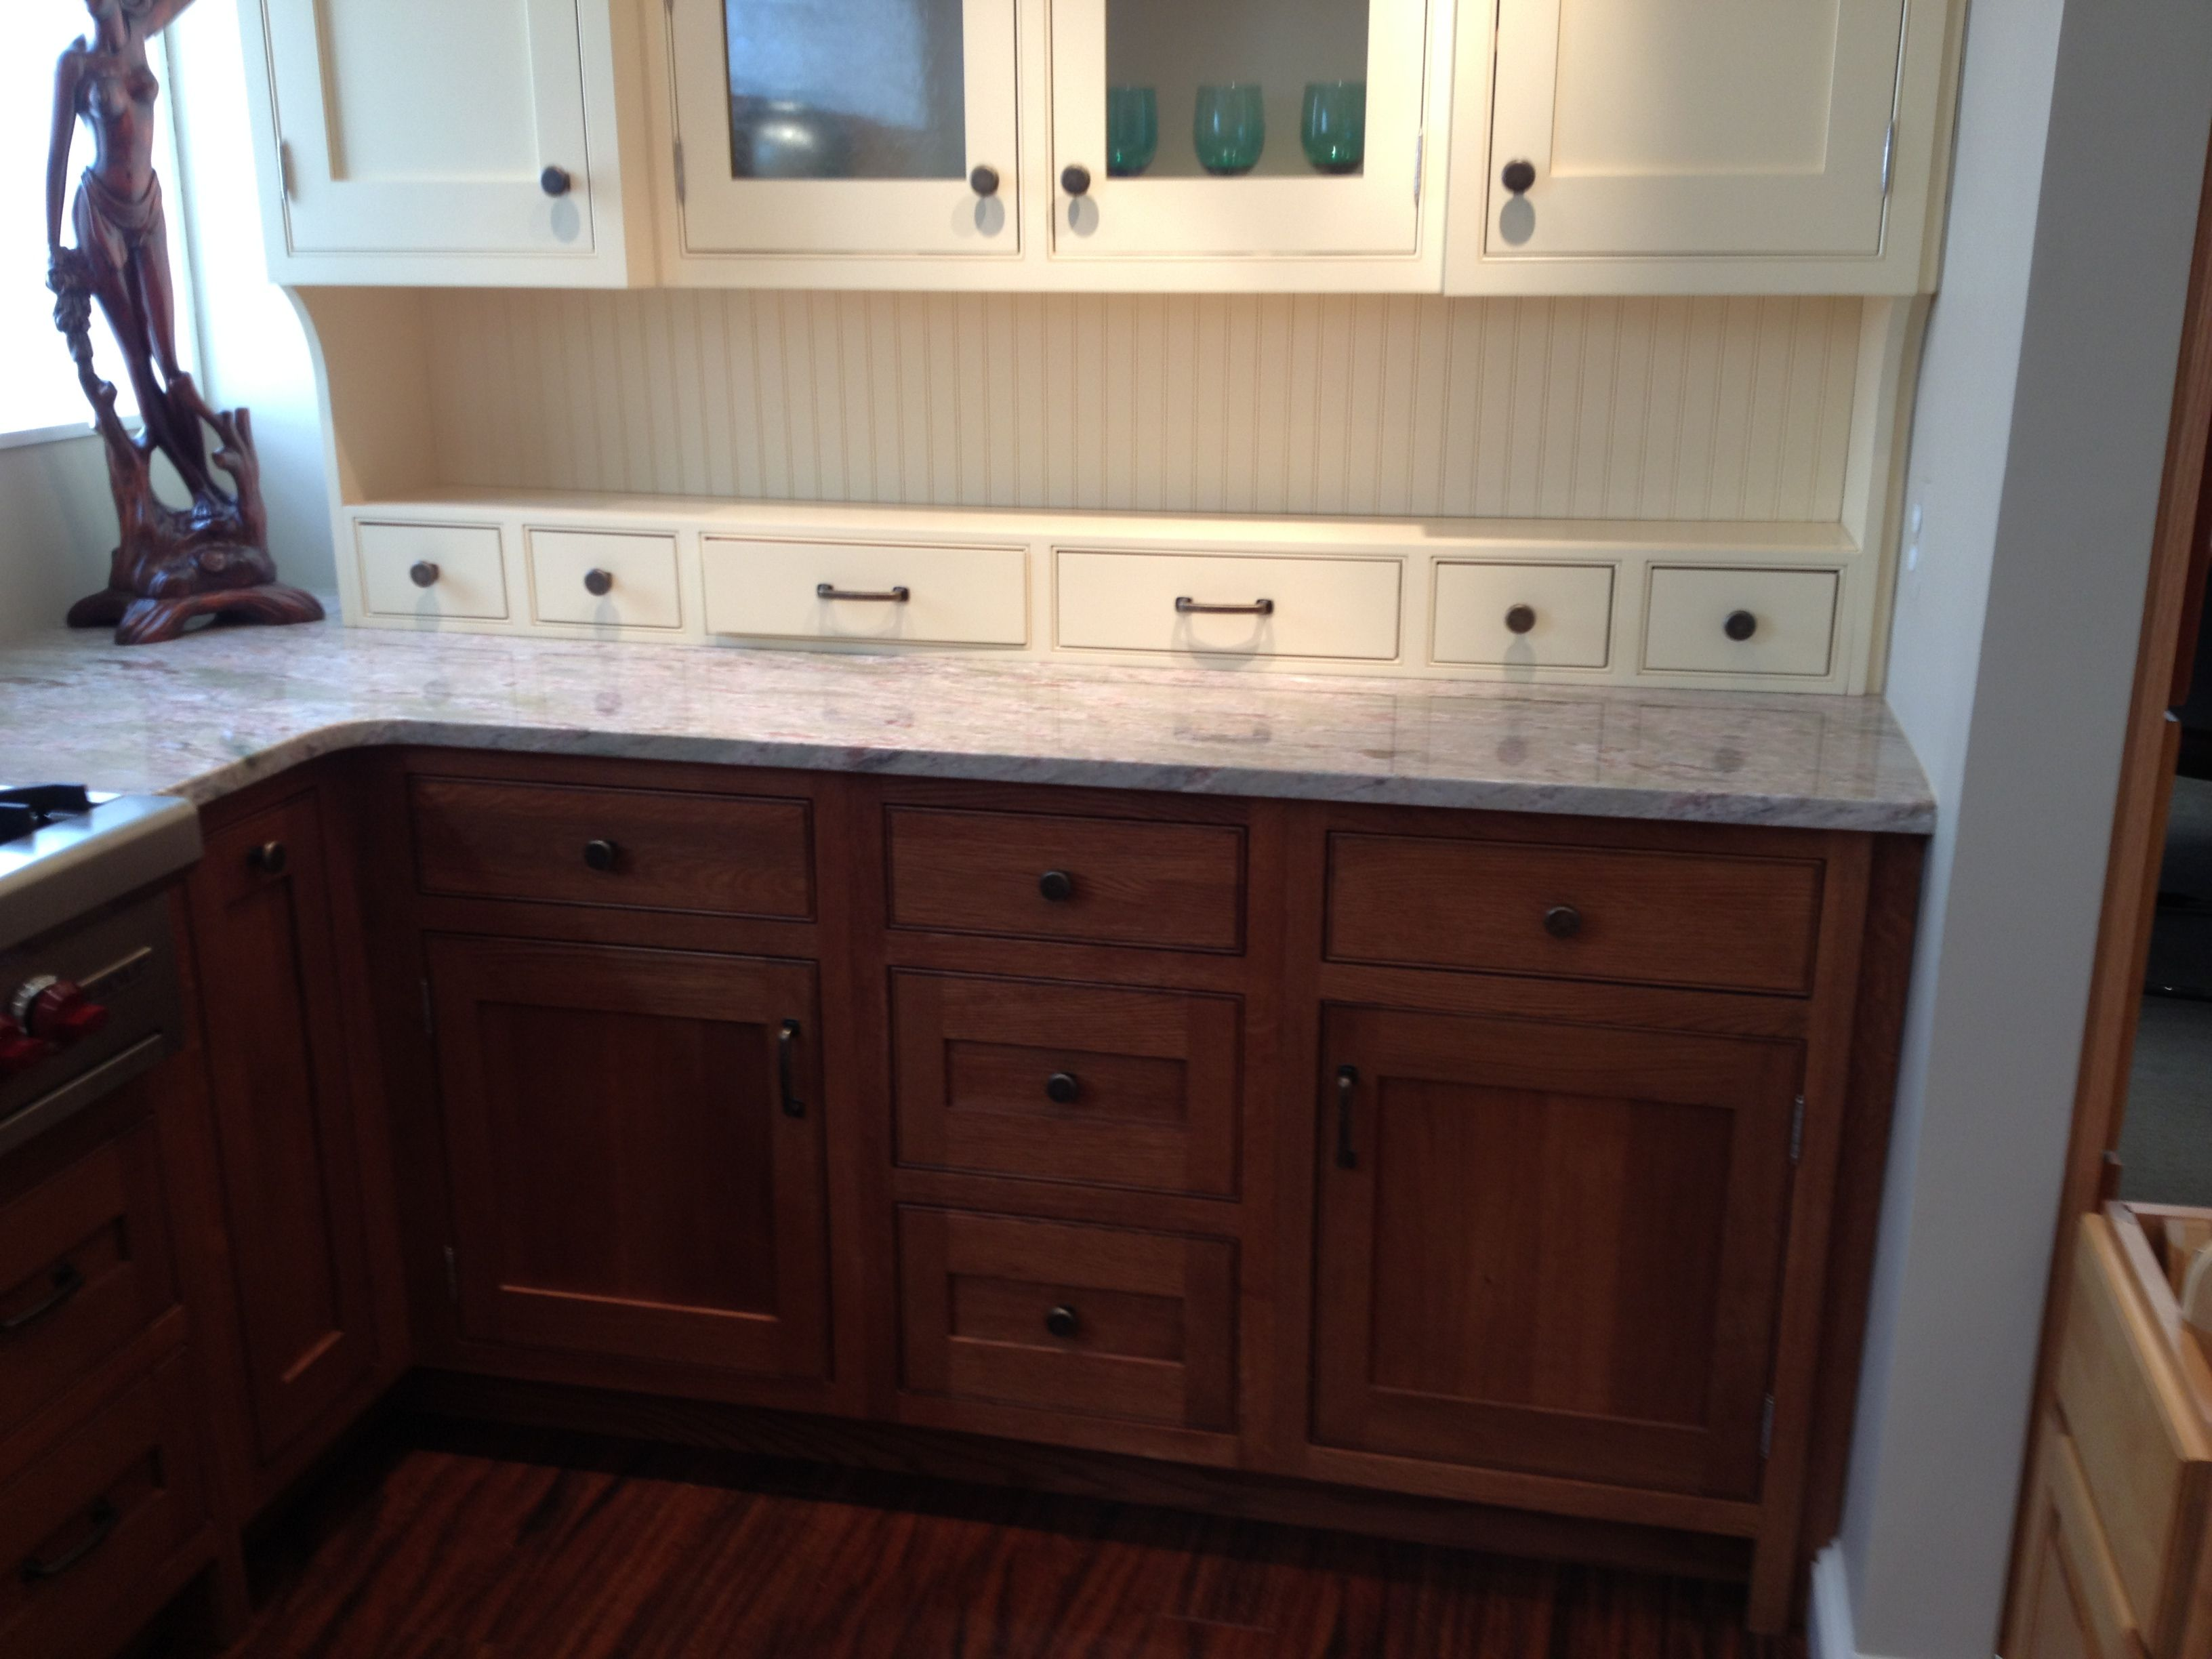 Mixing Kitchen Cabinet Colors Use Mixed Cabinet Colors In Kitchen Re Modeling Pinterest